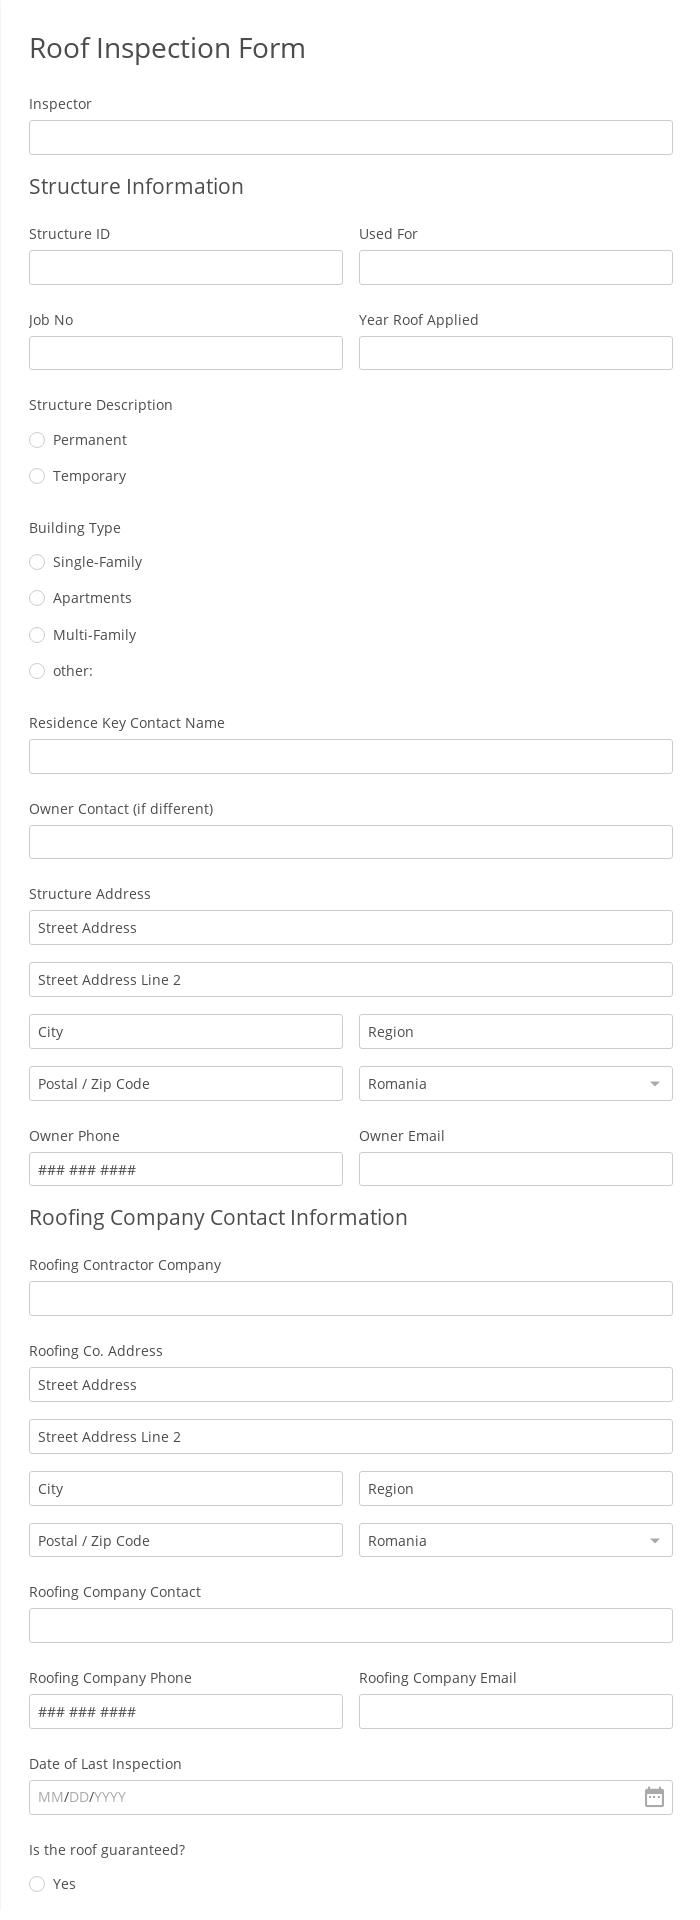 Roof Inspection Form